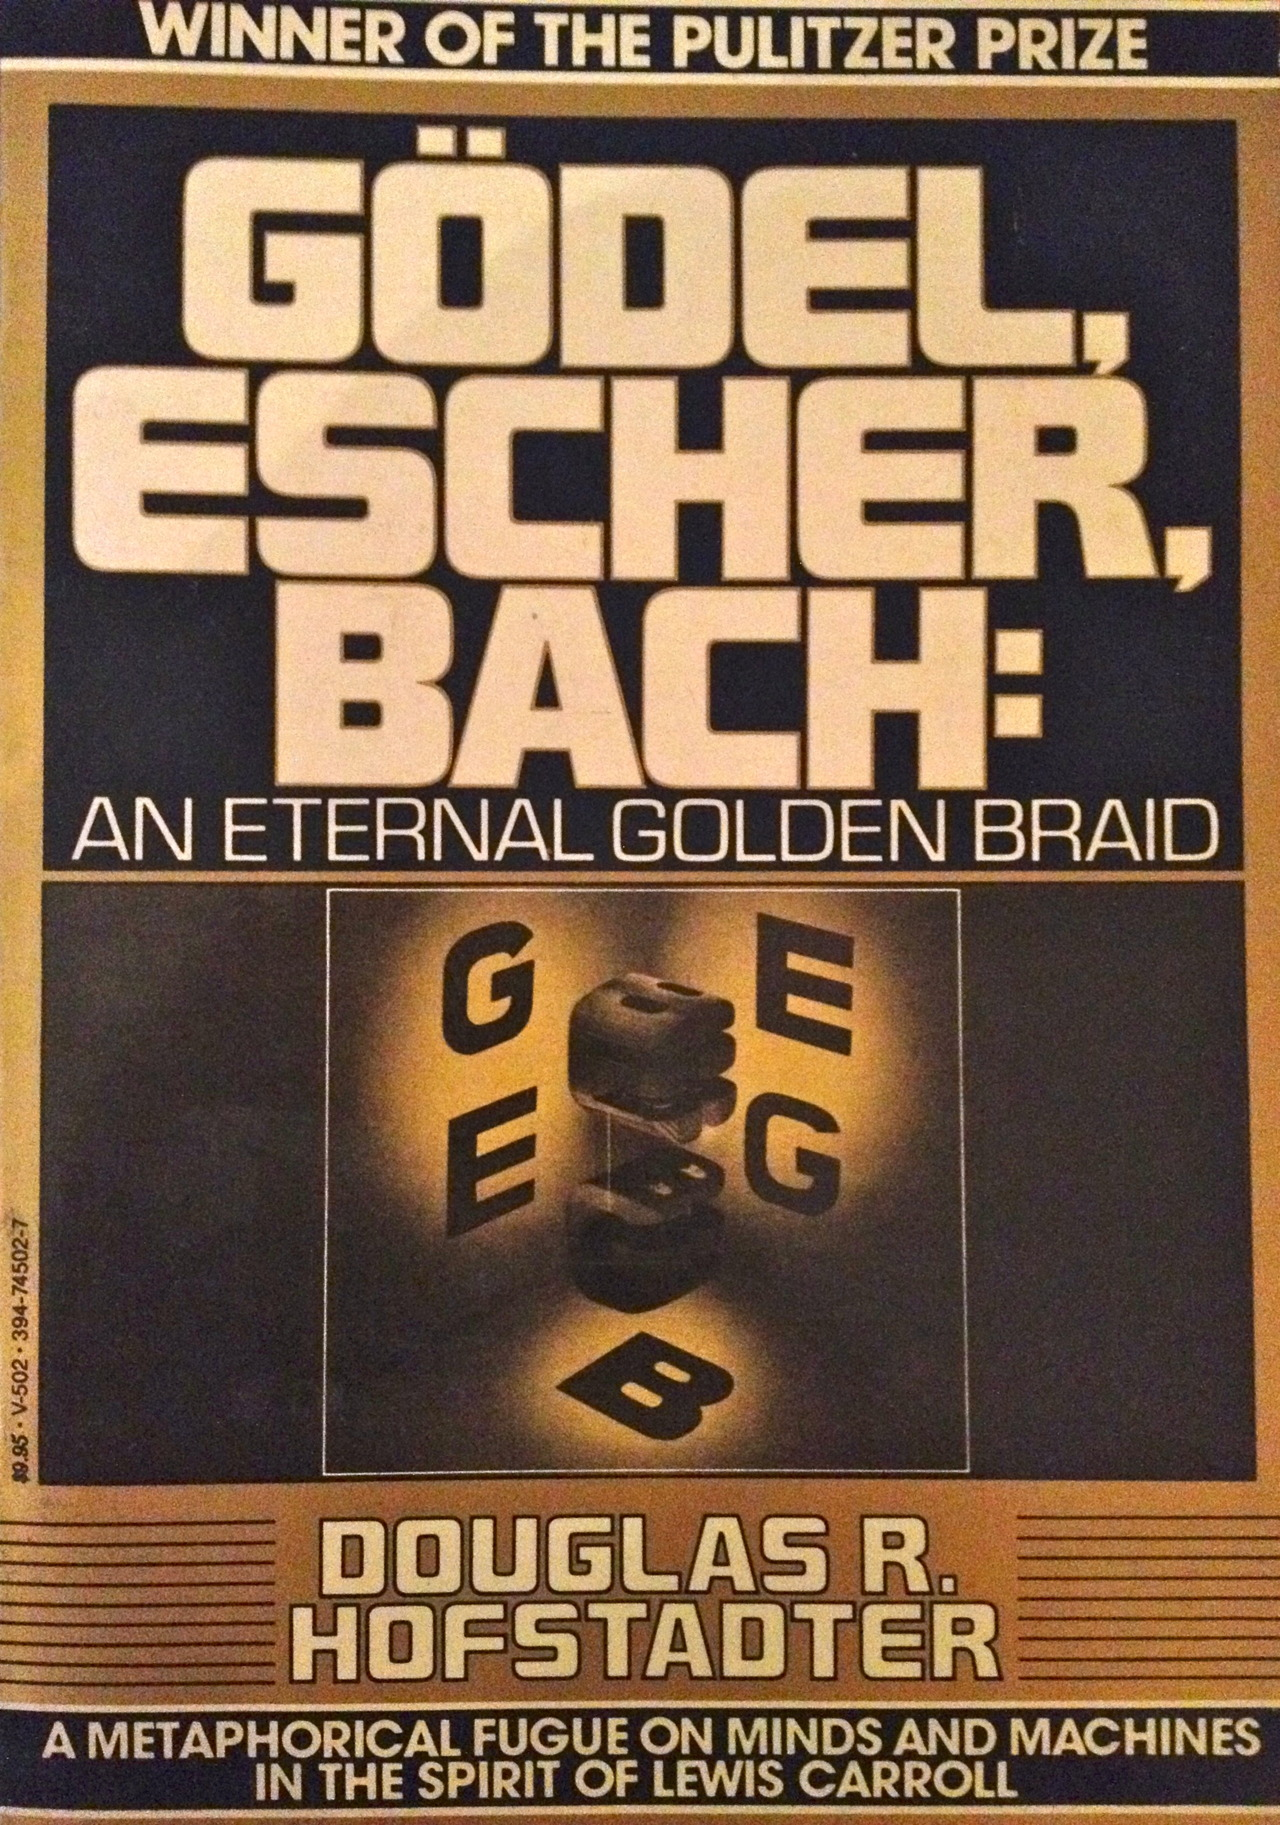 I lived with a bunch of engineering students my freshman and sophomore years. At some point, everybody got a copy of this and was reading it. It's an interesting melange of math, music and art. If you like word puzzles, and recursions and illusions, Zen koans and a dose of philosophy, it entertains. My friends all became programmers and physicists, and I went into journalism, a practical art. We all took something different away from this, I suspect — in my case, a lasting interest in koans and Zen Buddhism. My wife picked this up the other day because one of her students is reading it, but after seeing the formulas and technical material, she put it back on the shelf. It can be tough reading, but it rewards you by stretching the brain.